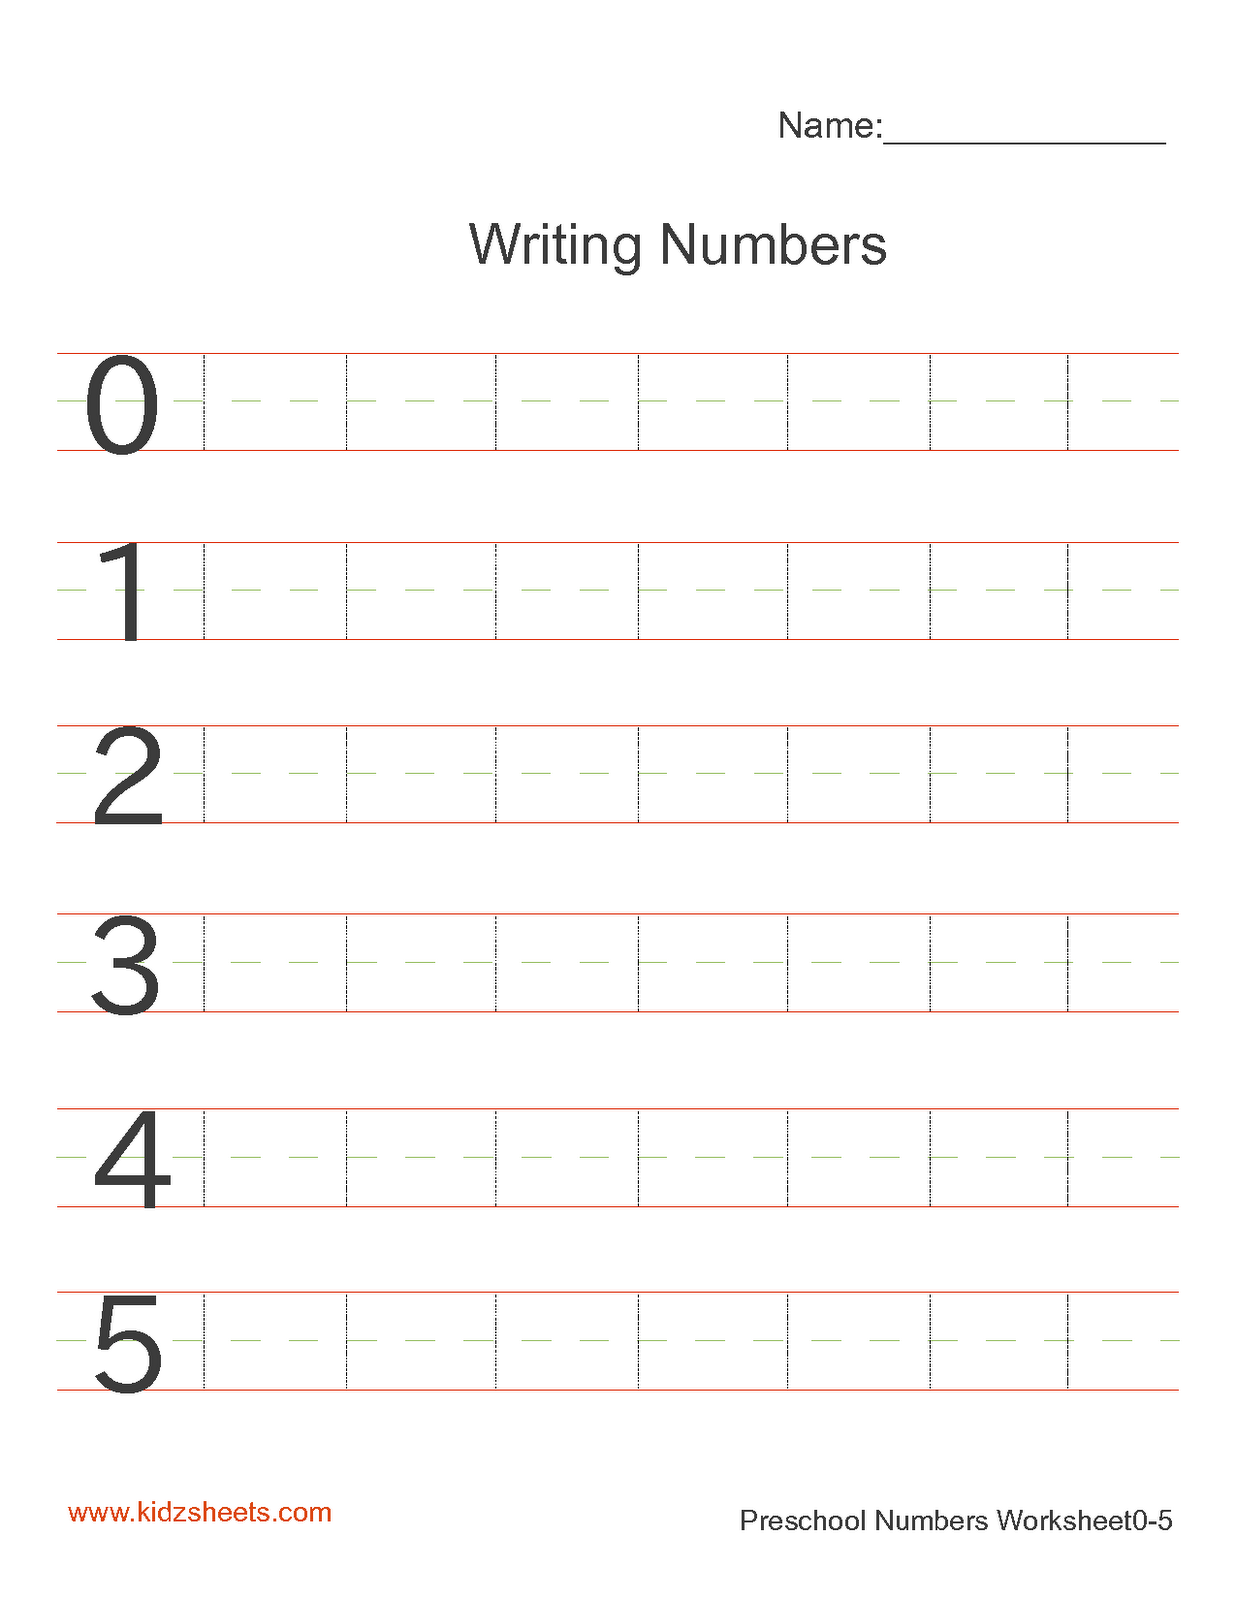 worksheet Writing Worksheets For Kindergarten worksheet 500458 create handwriting worksheets for kindergarten custom kindergarten